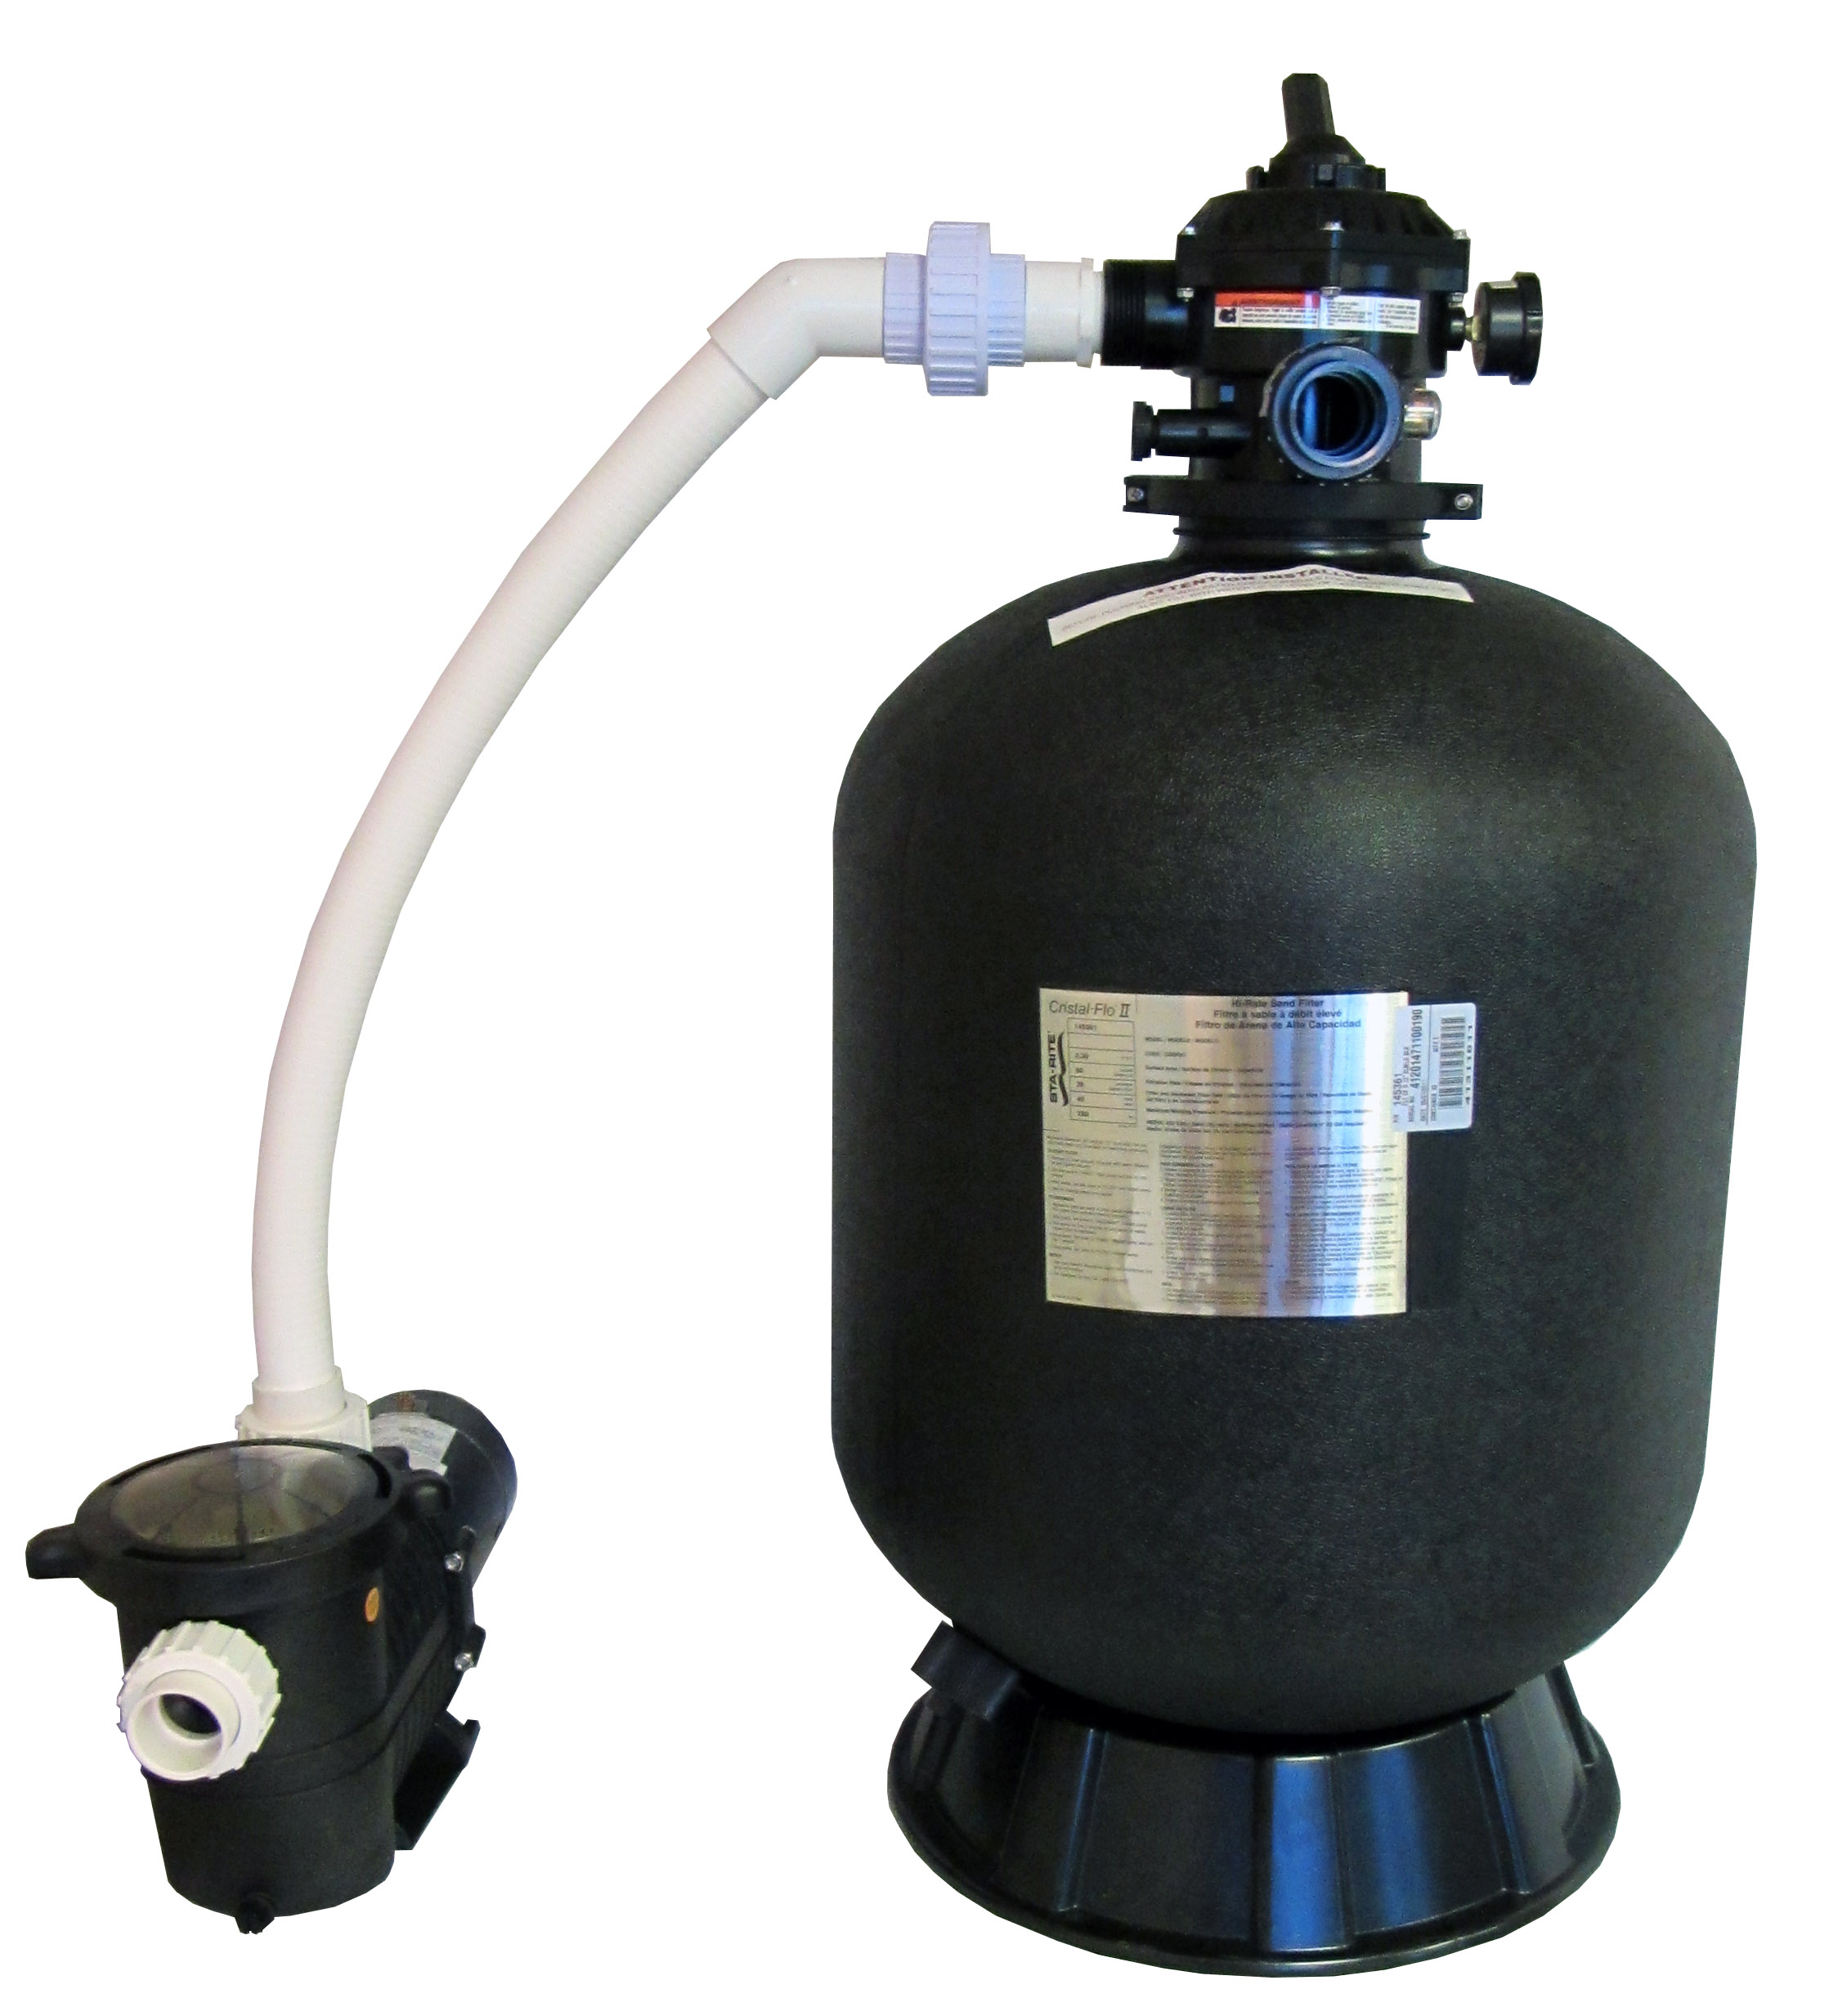 Sta rite in ground swimming pool sand filter system with 0 for Inground pool pump and filter systems